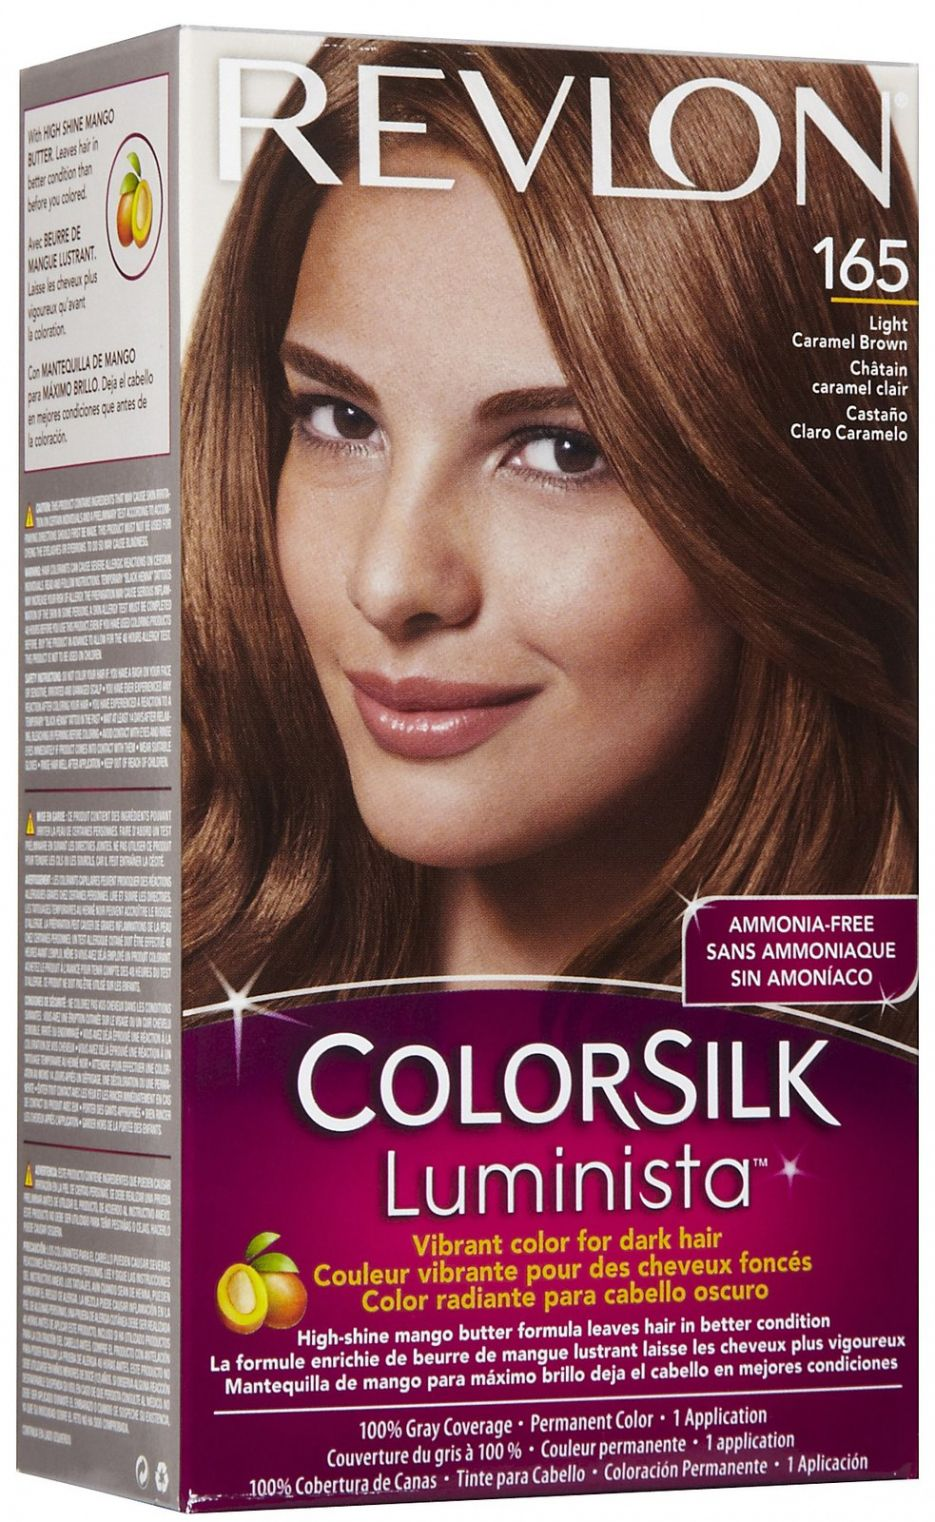 Caramel Brown Hair Color Brand Best Way To Color Your Hair At